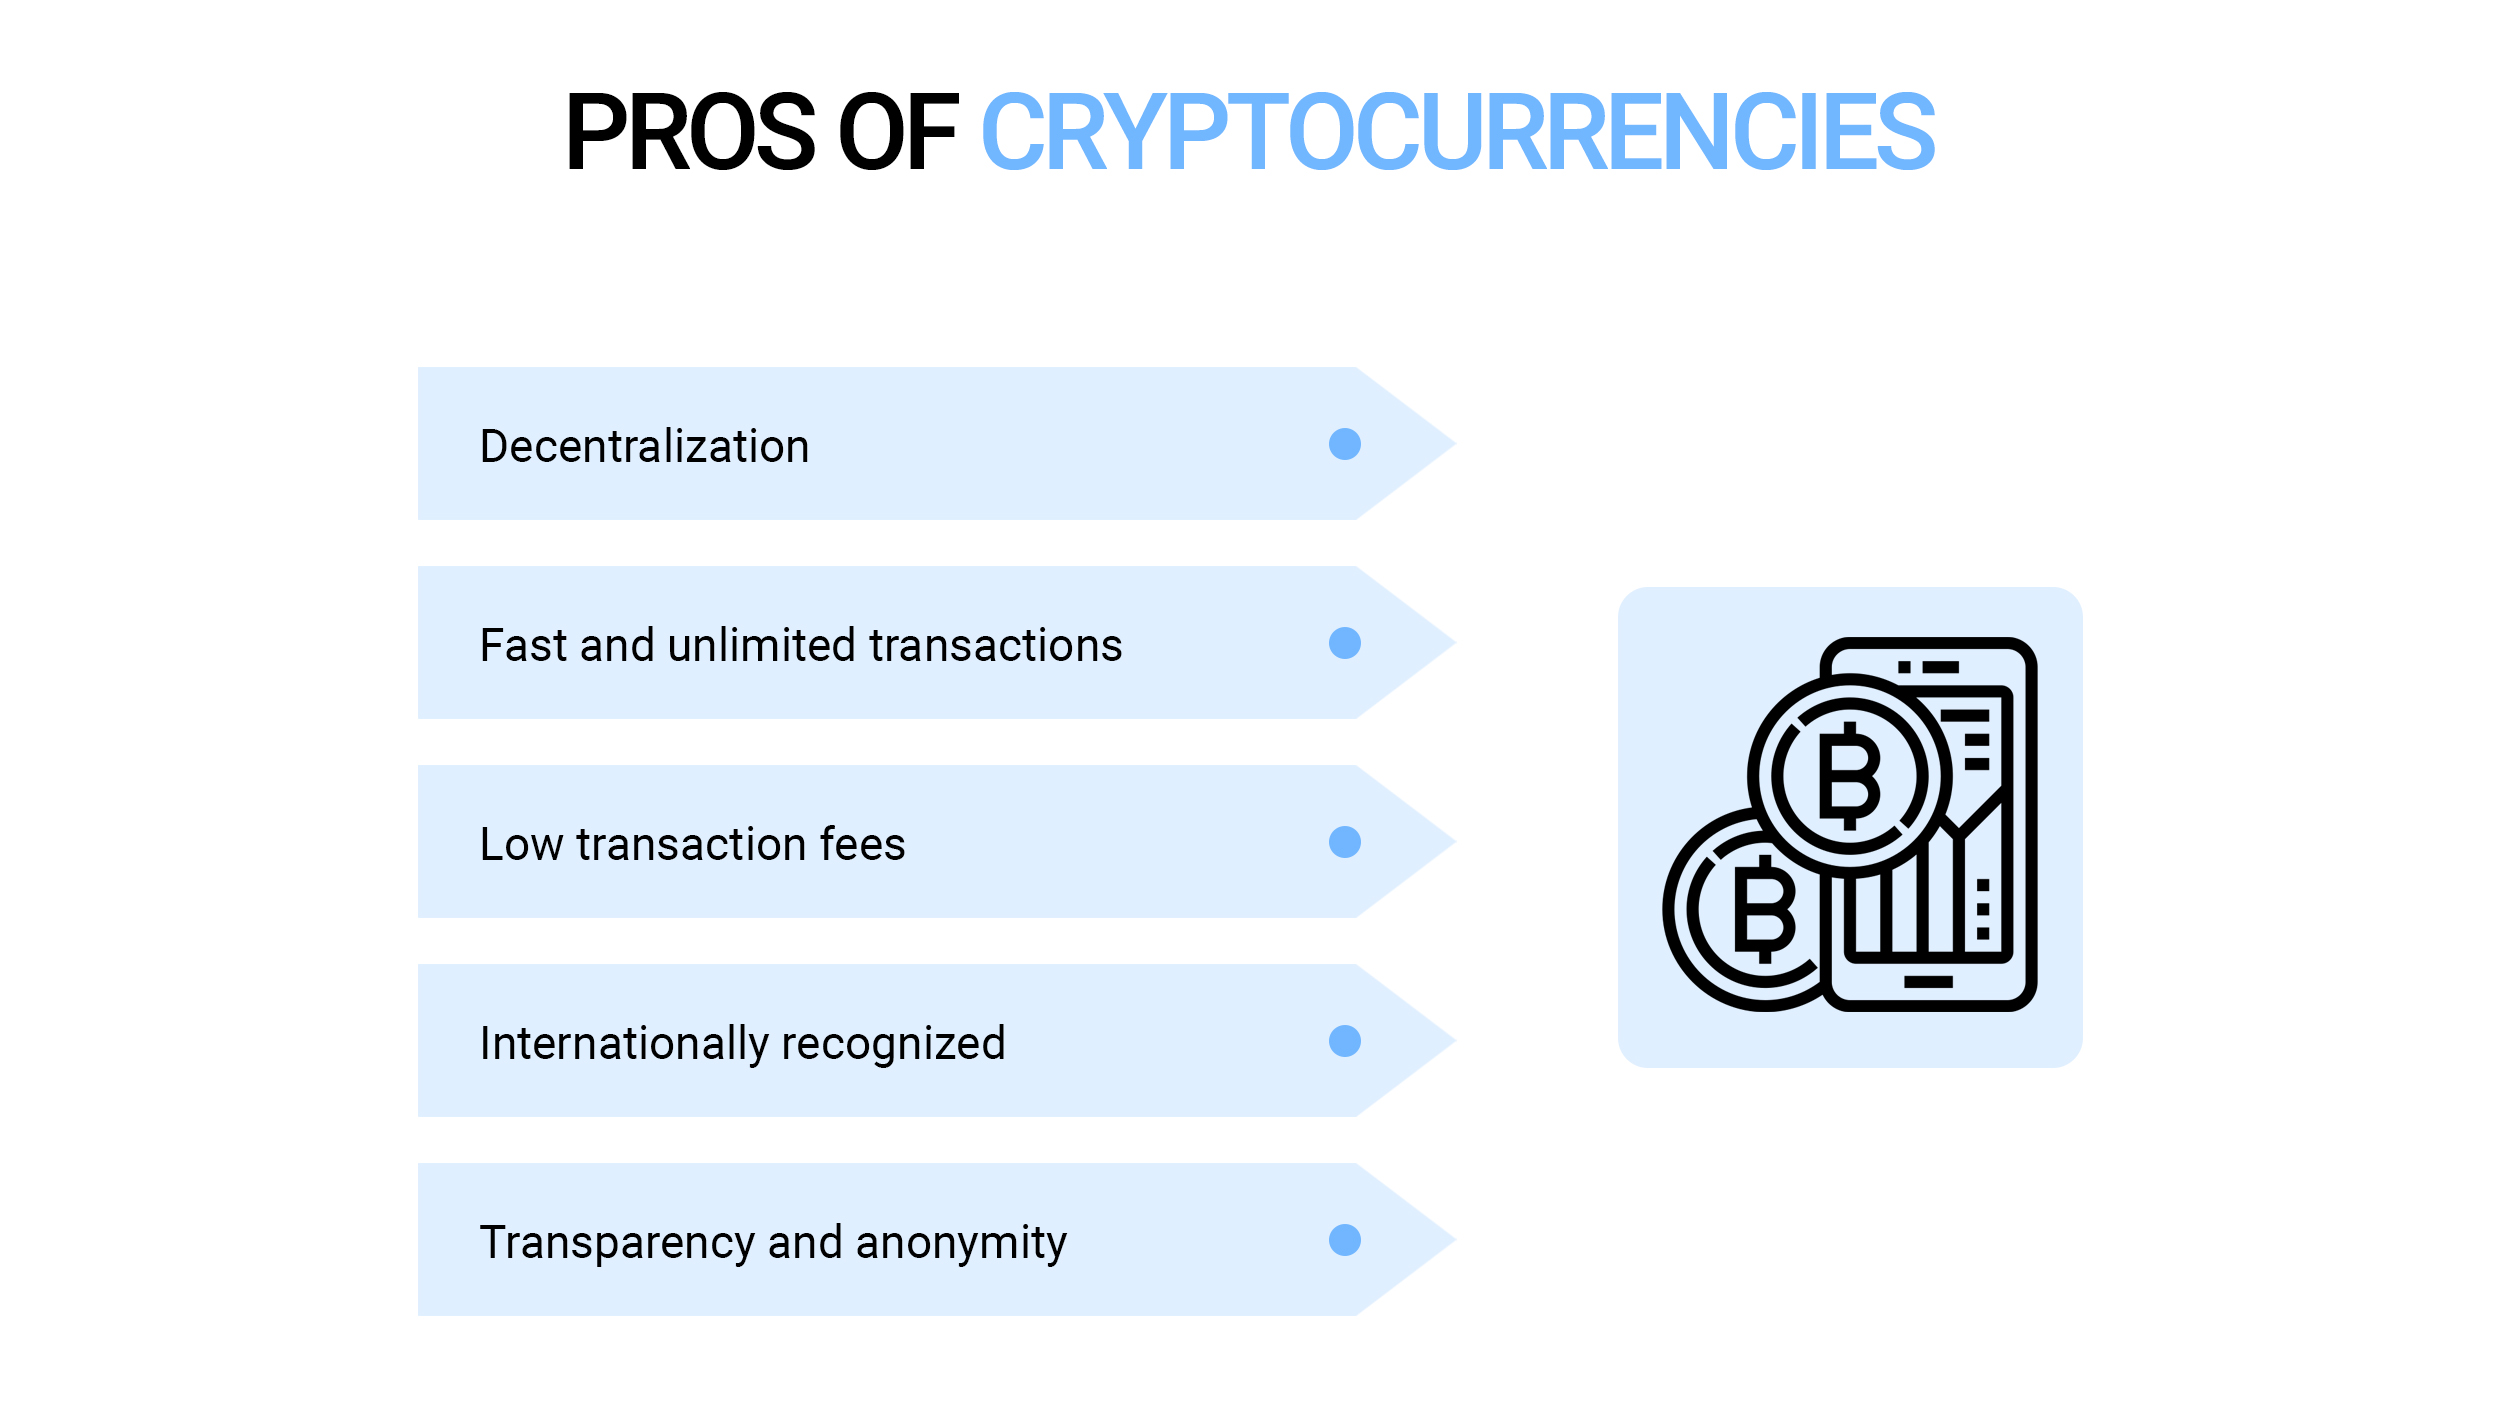 Pros of cryptocurrencies